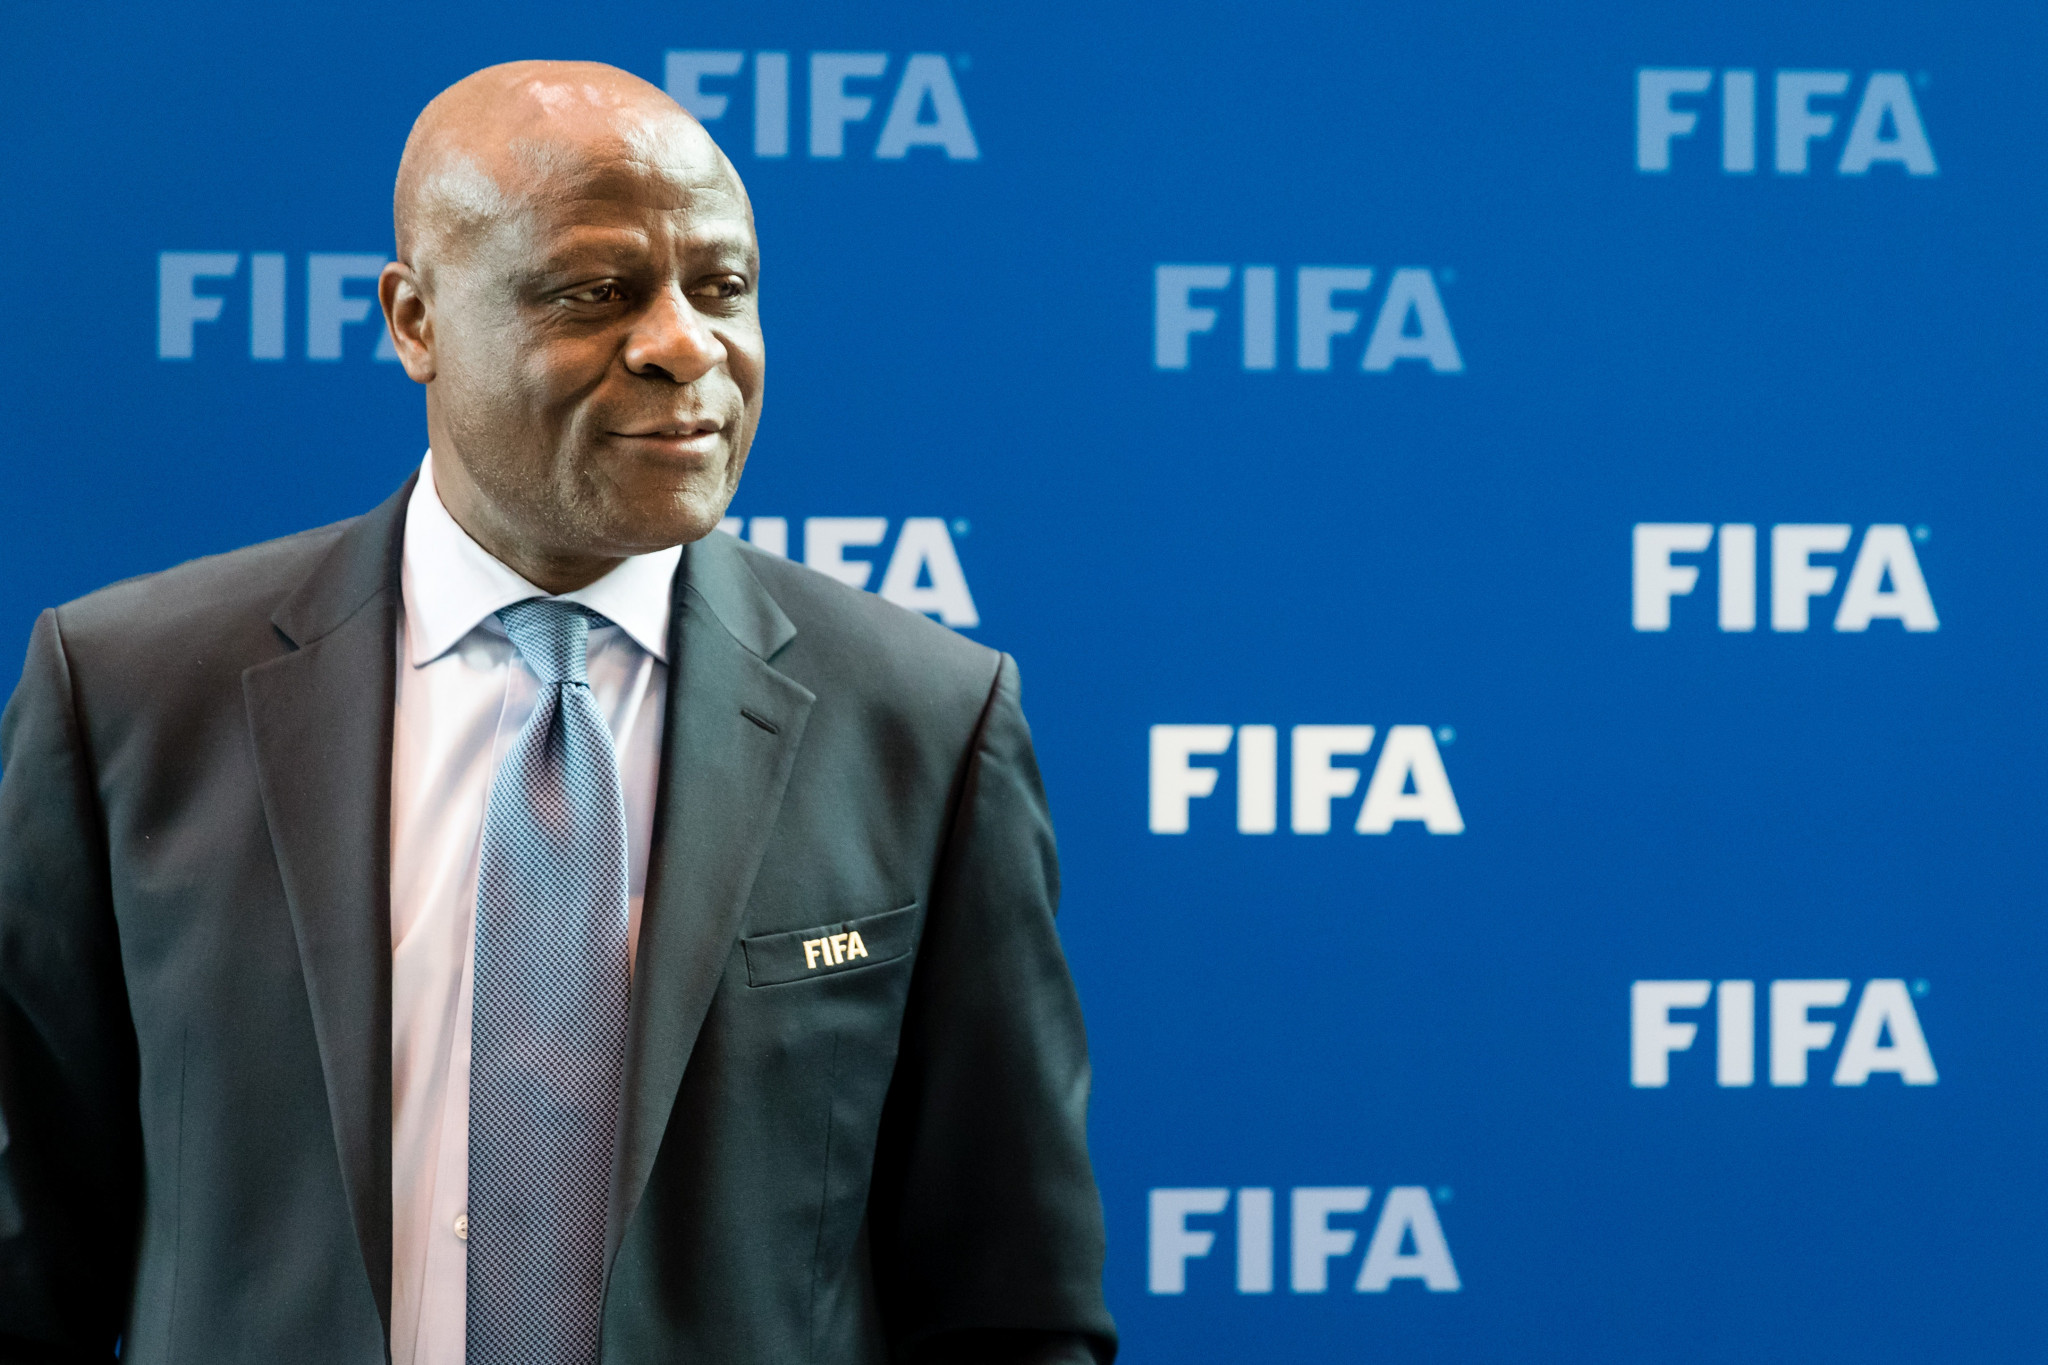 FIFA Council member Omari arrested on corruption charges in DR Congo